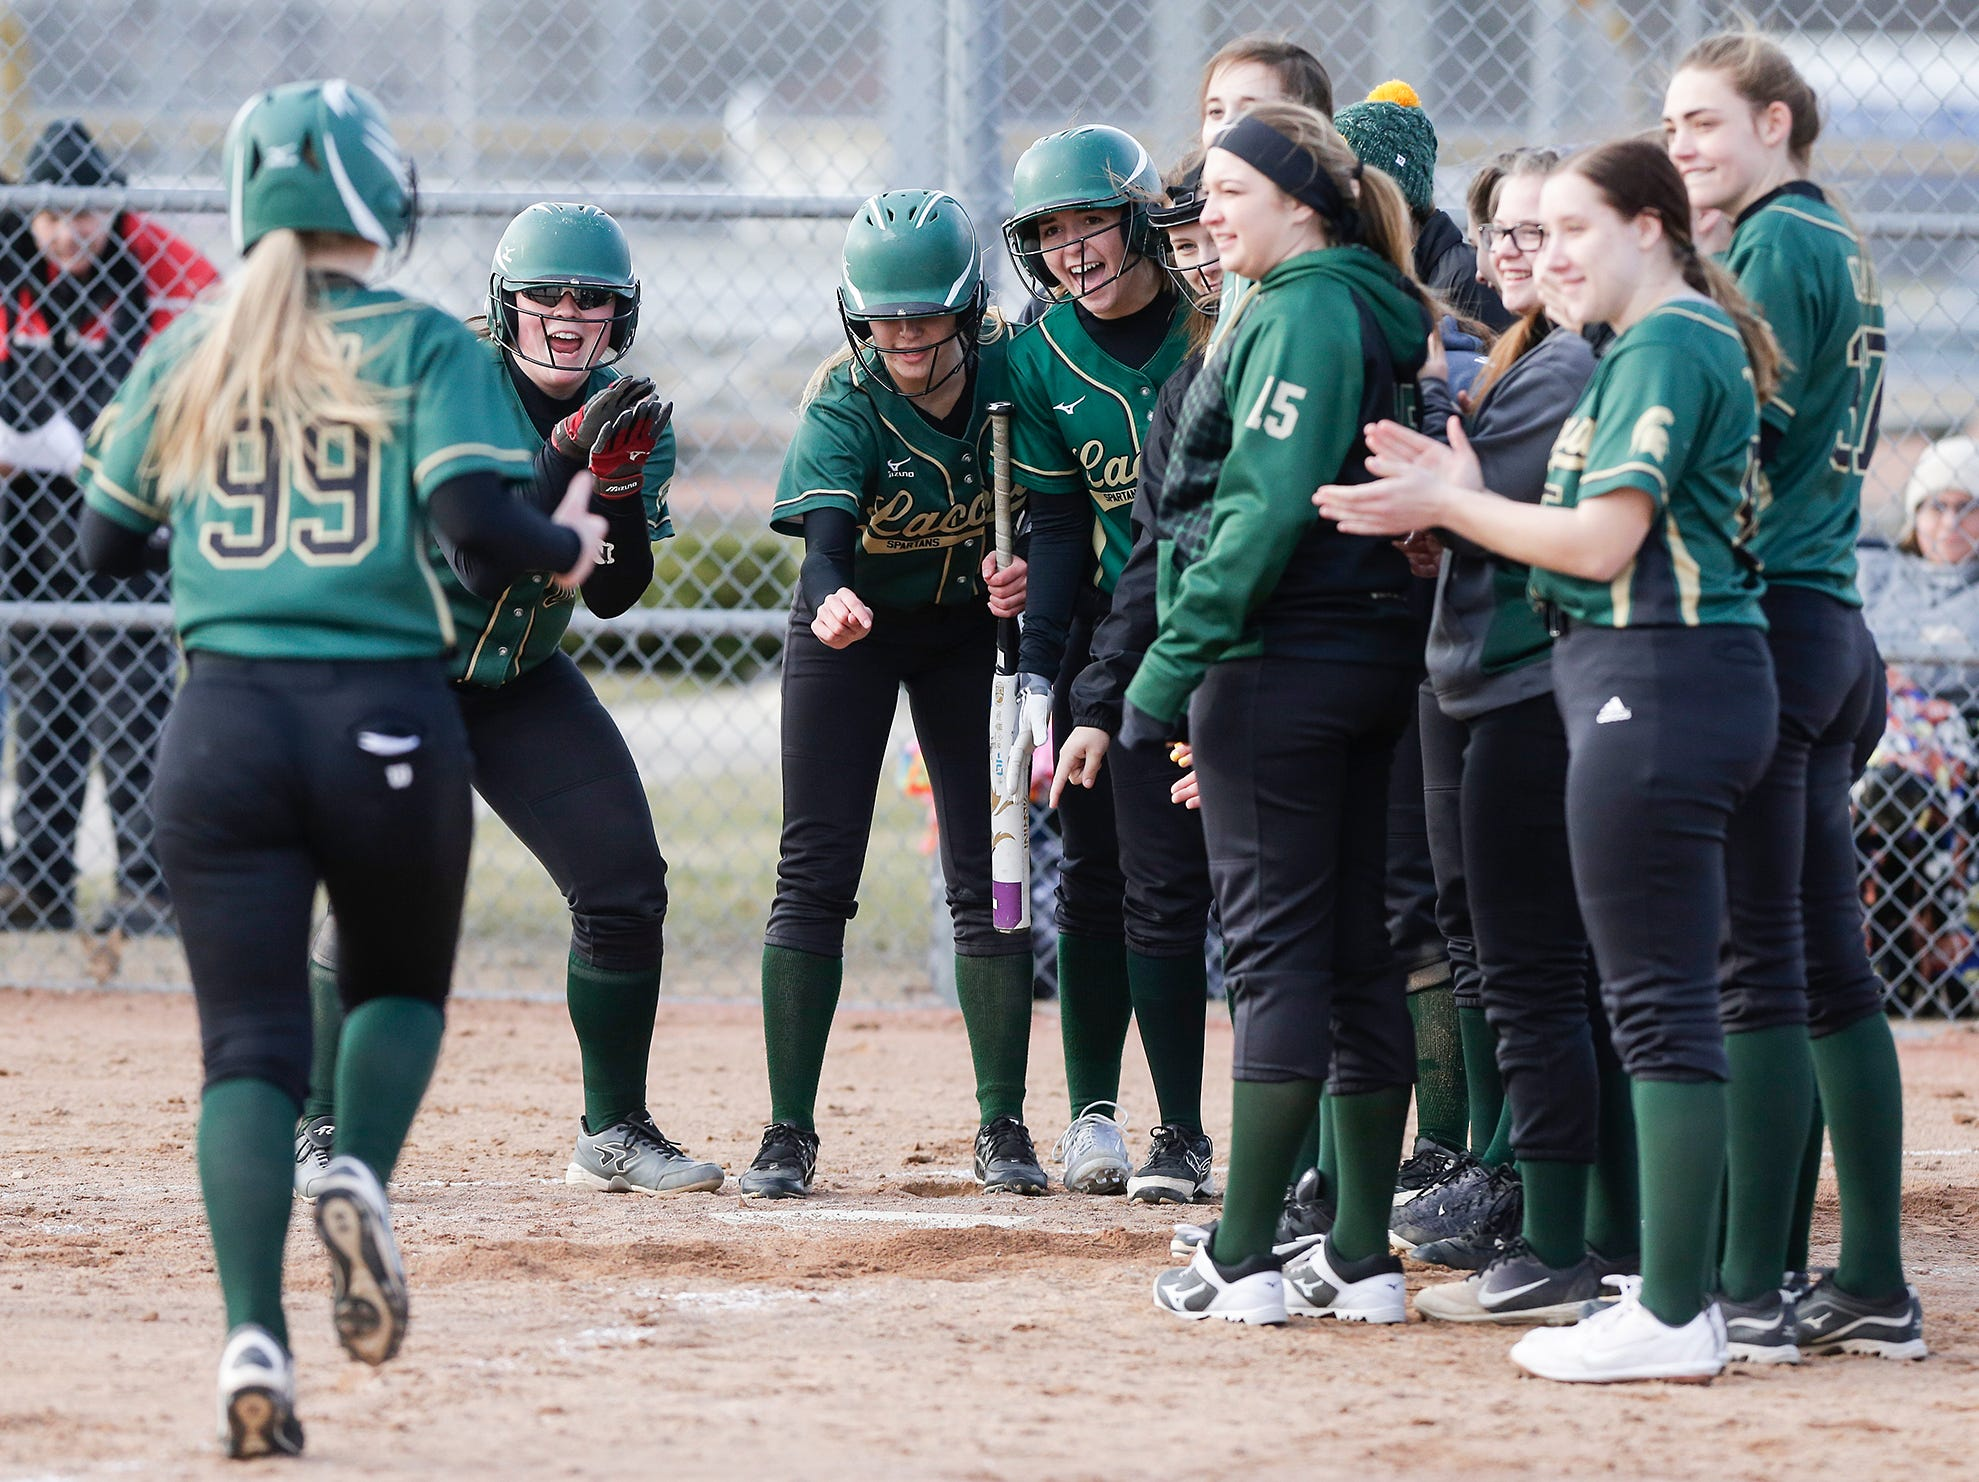 The Laconia High School softball team waits to congratulate Faith Weed after her homerun against Winnebago Lutheran Academy April 9, 2019 during their game in Fond du Lac, Wis. Laconia won the game 25-9. Doug Raflik/USA TODAY NETWORK-Wisconsin